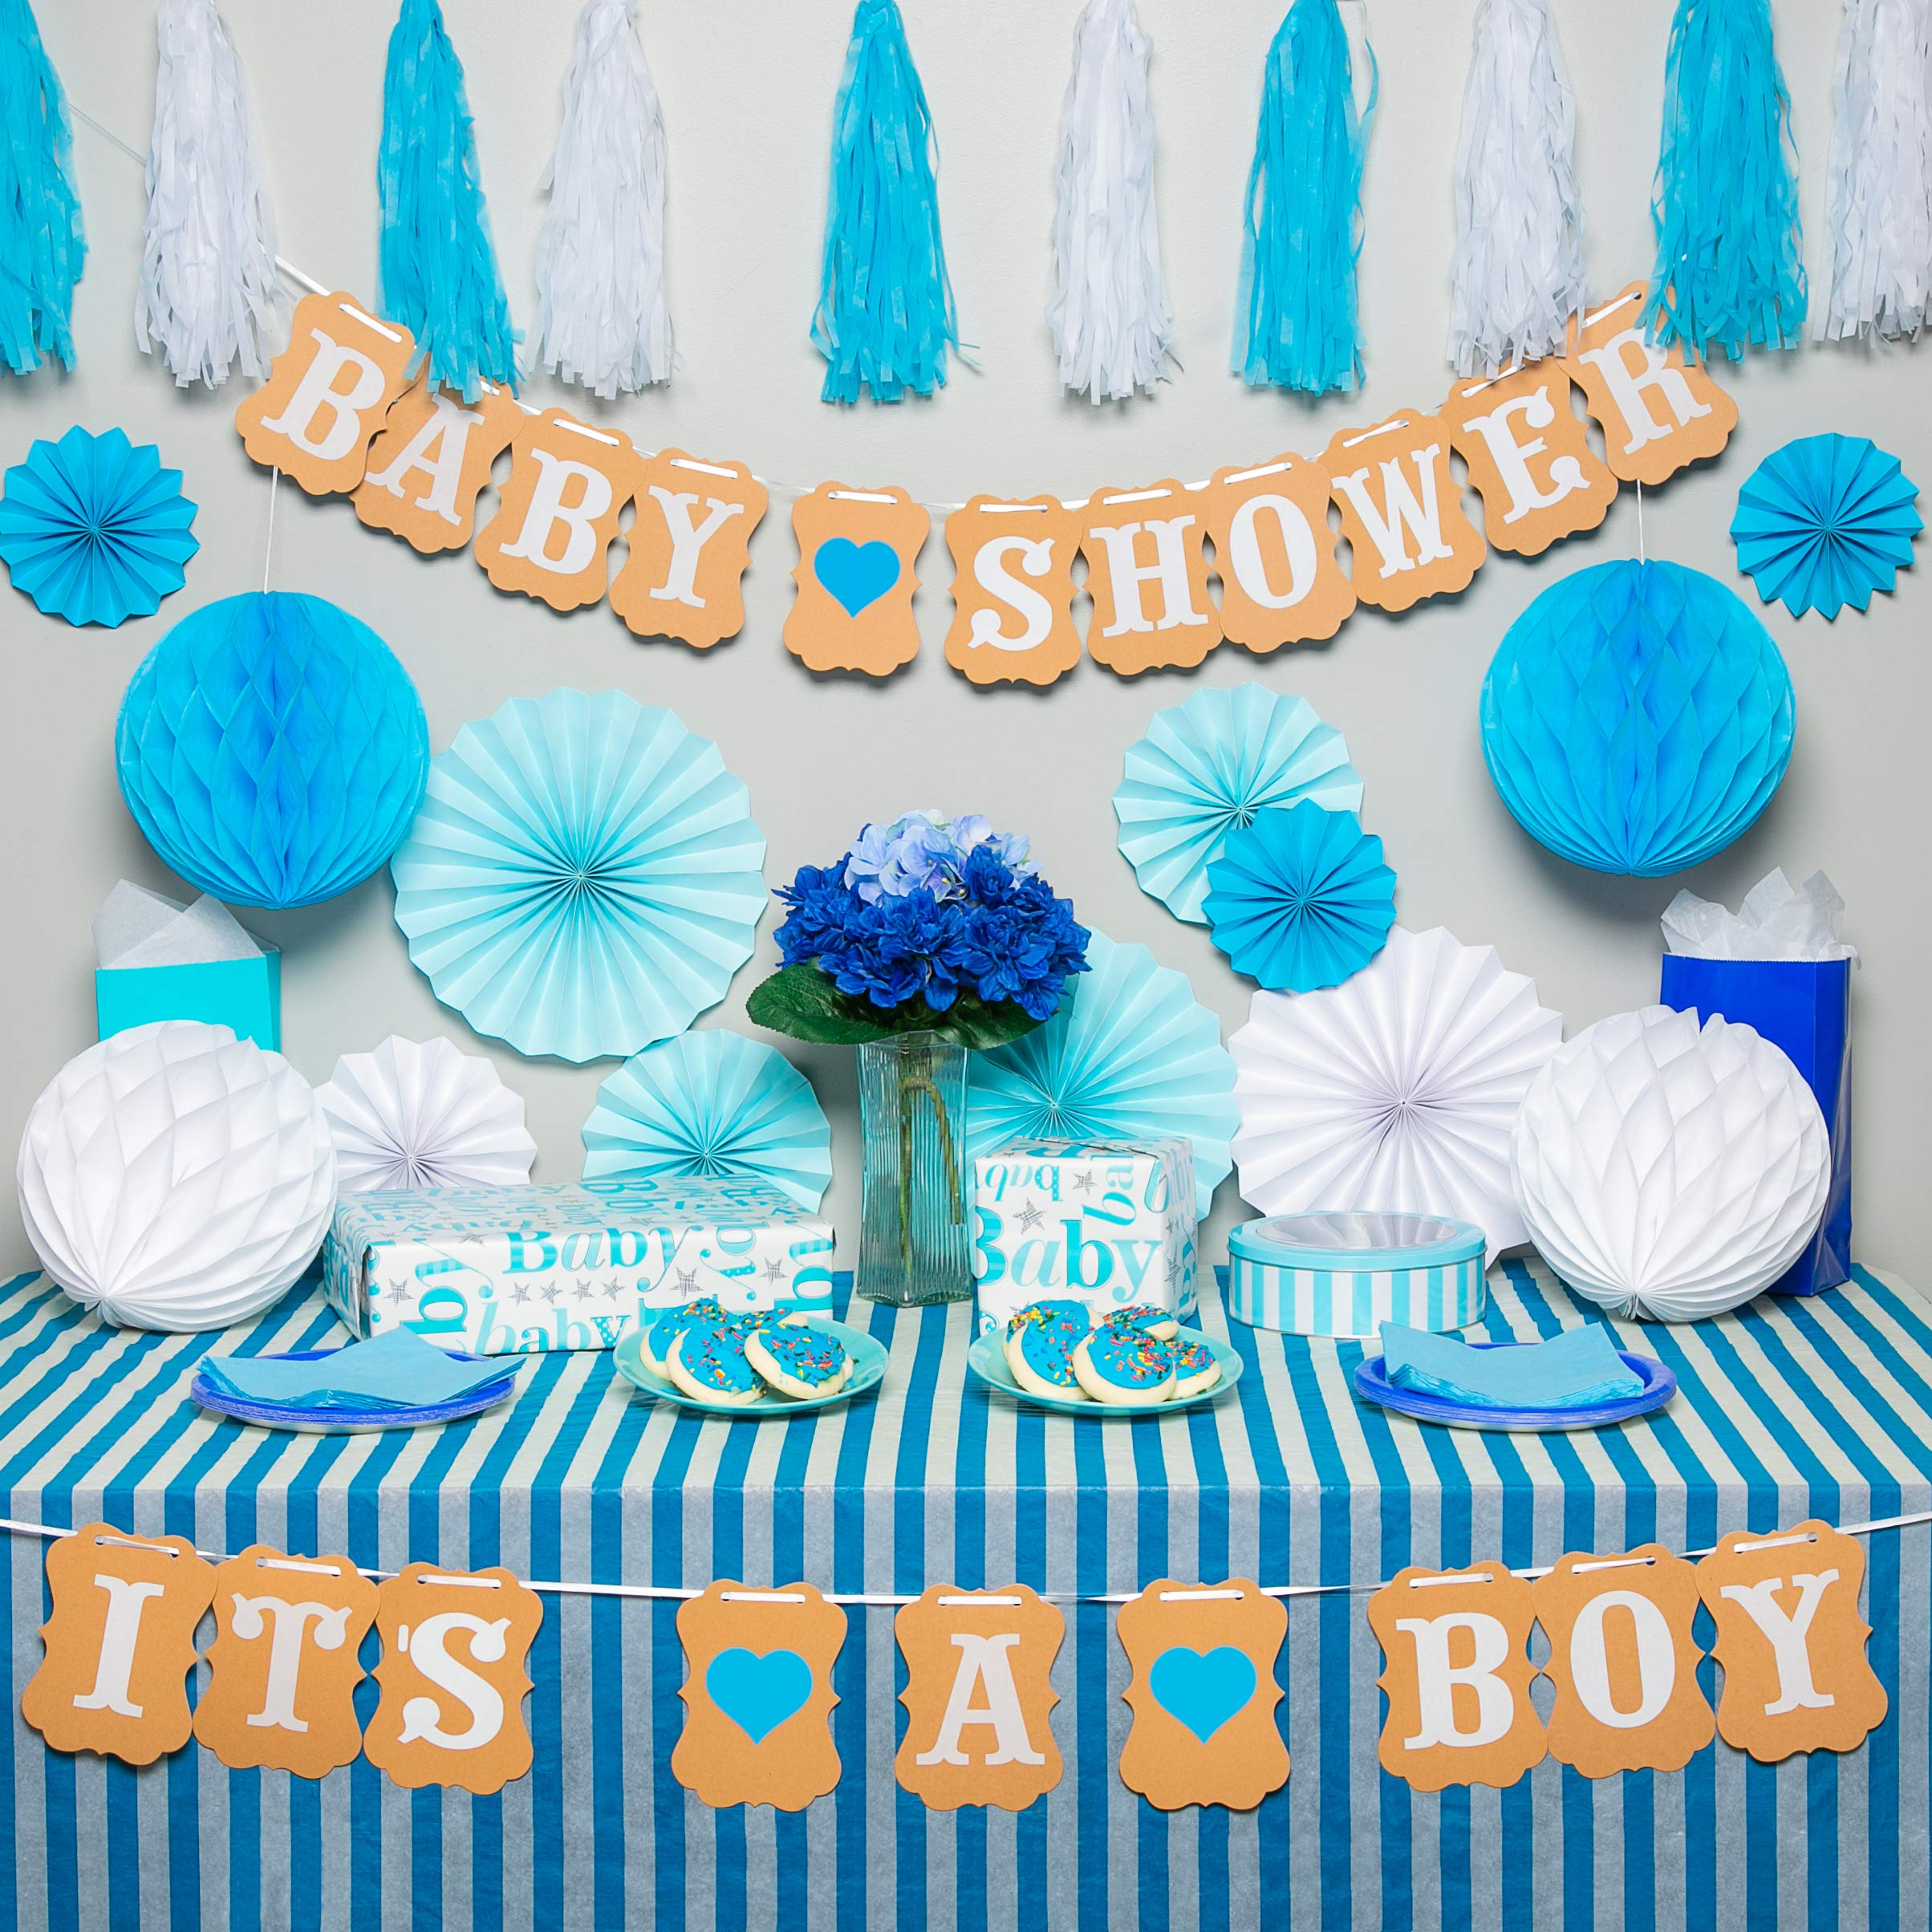 Premium baby shower decorations for boy Kit | It's a boy baby shower decorations with striped tablecloth, 2 banners, paper fans, and honeycomb balls | complete baby shower set for a beautiful baby boy by TeeMoo (Image #9)